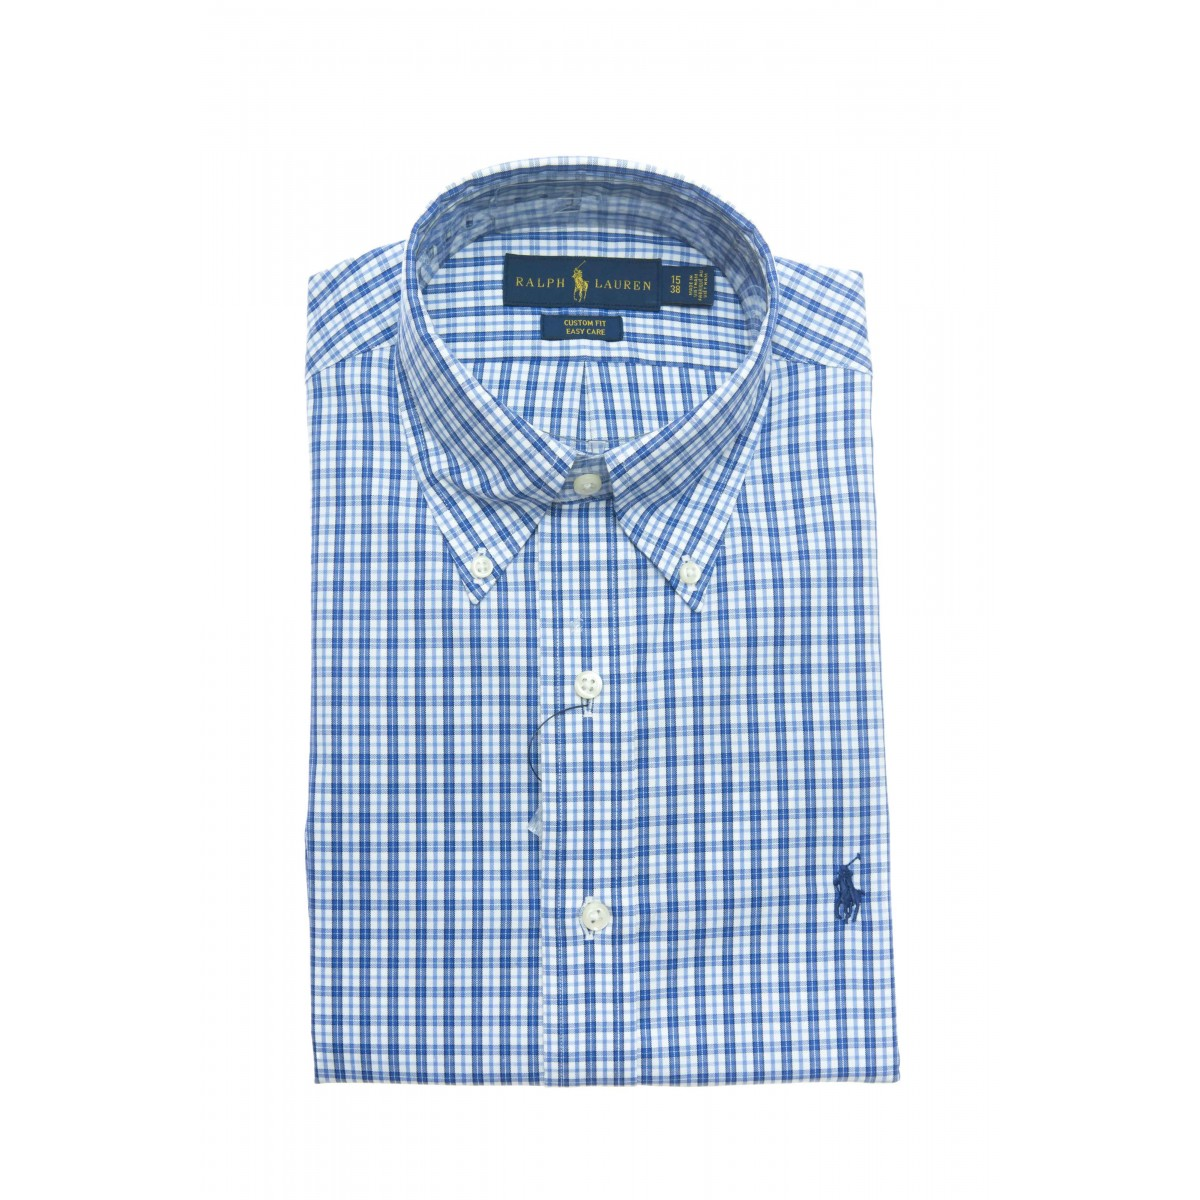 Camicia uomo - 766315 custom fit easy care